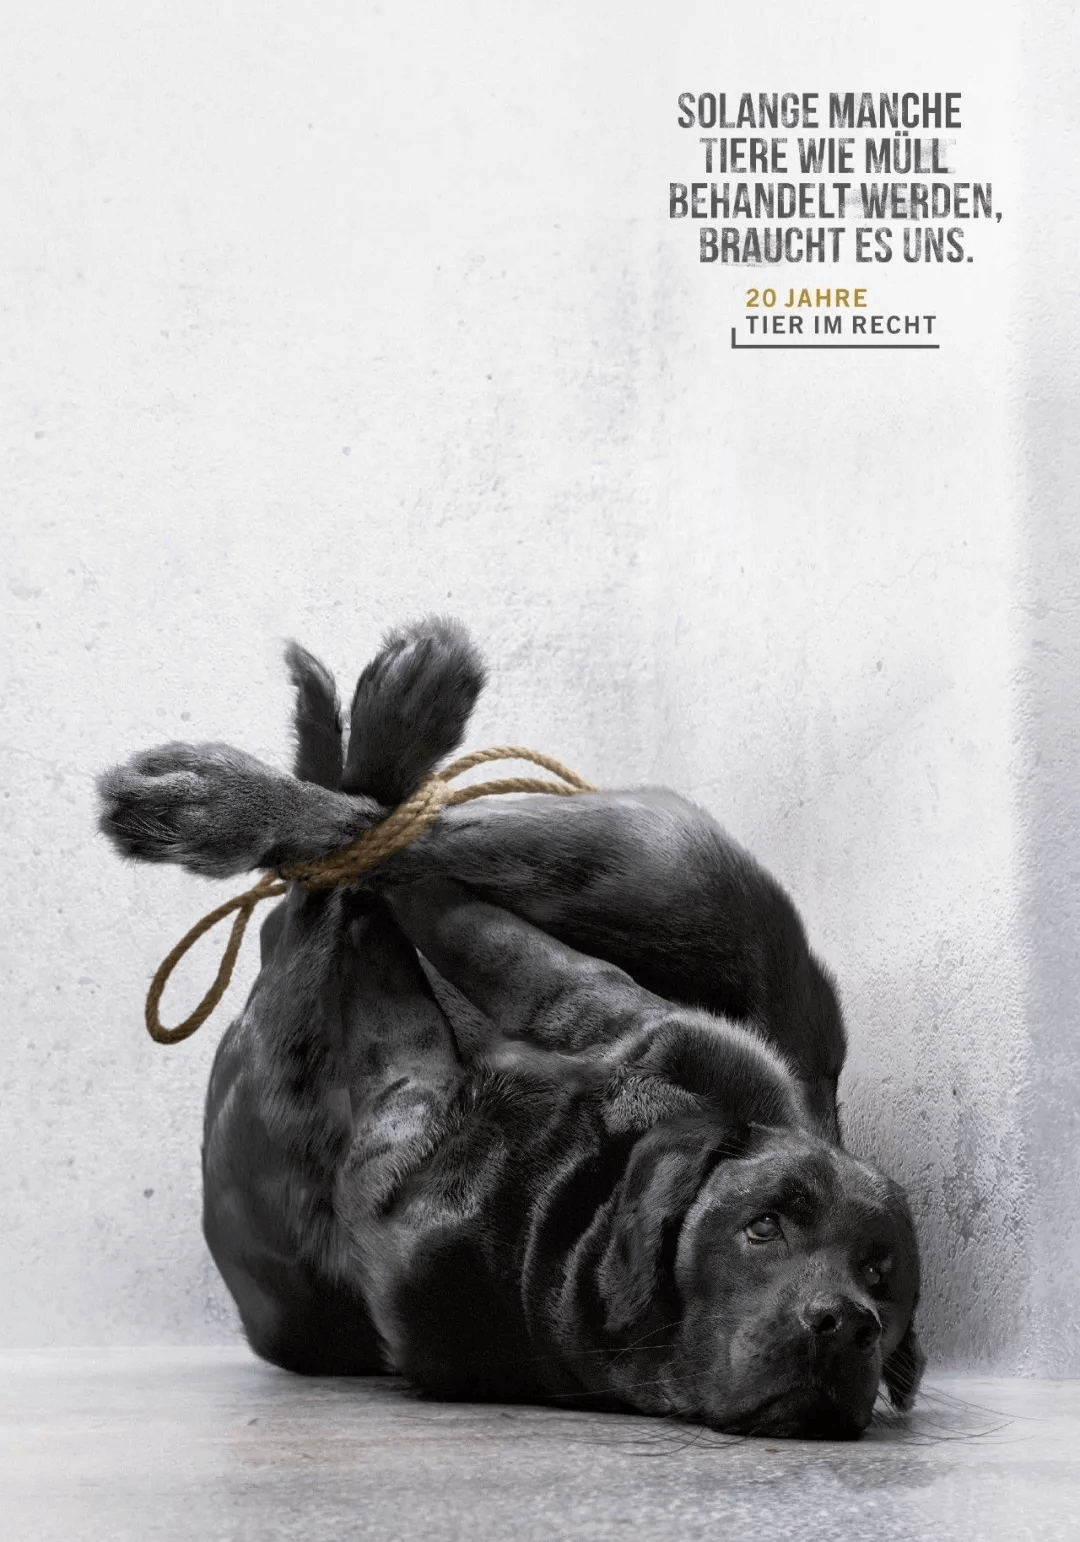 an edited image of a black dog in a poster used for anti-animal cruelty campaign